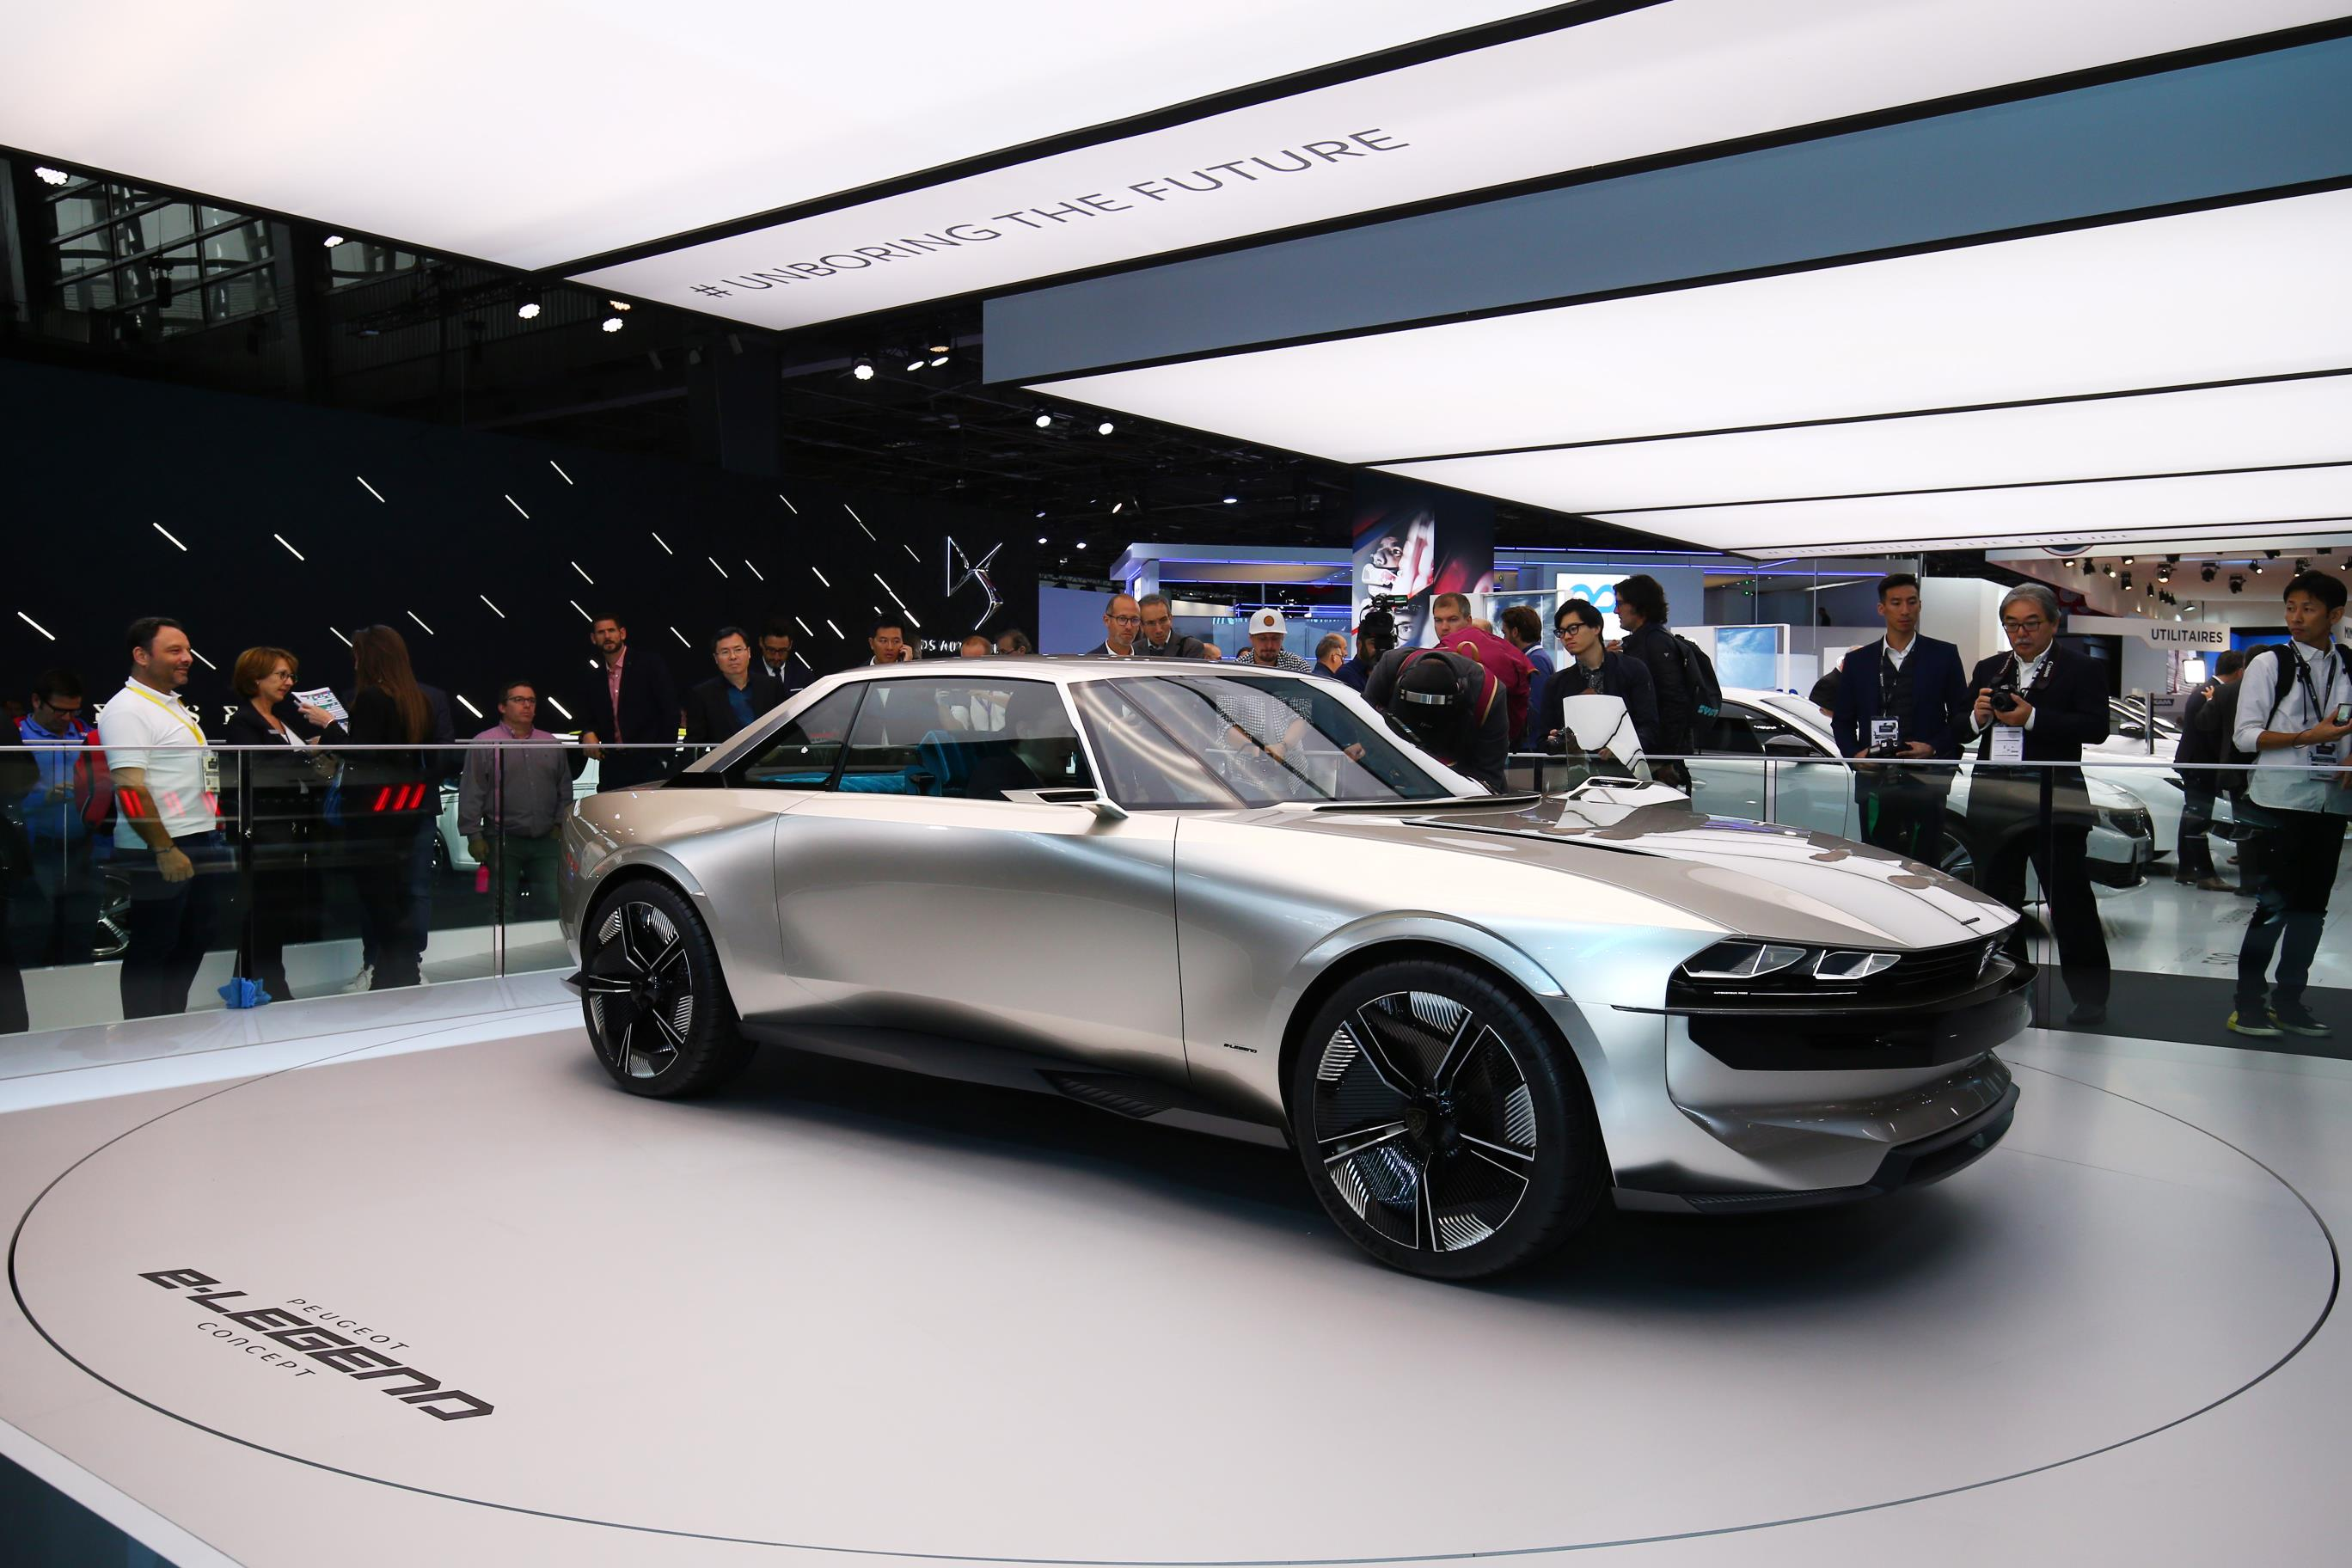 The Peugeot ELEGEND Concept Was A Stand Out Car From This Years - Car show wheel stands